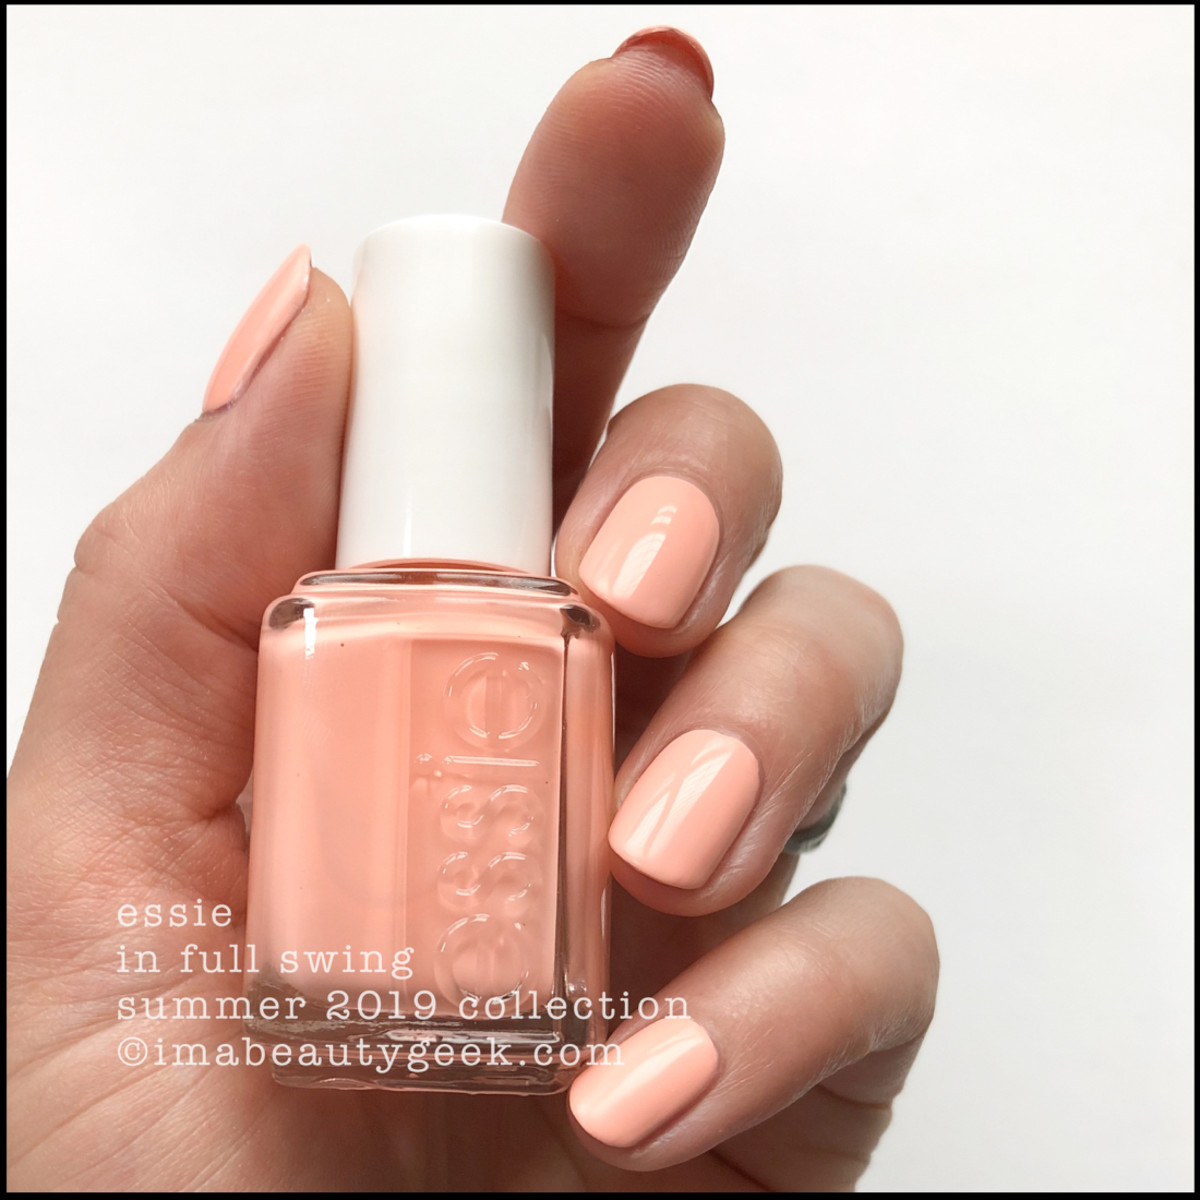 Essie In Full Swing - Essie Summer 2019 Neons